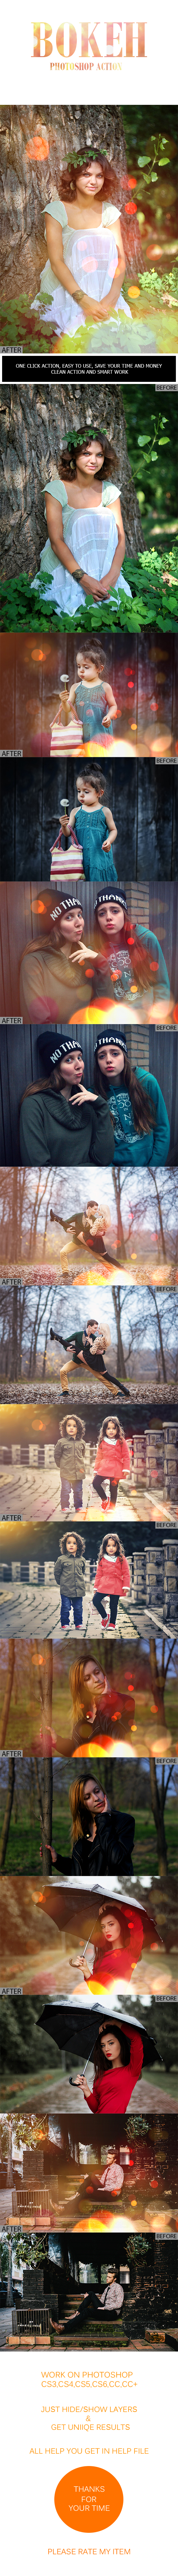 GraphicRiver Bokeh Photoshop Action 21067830